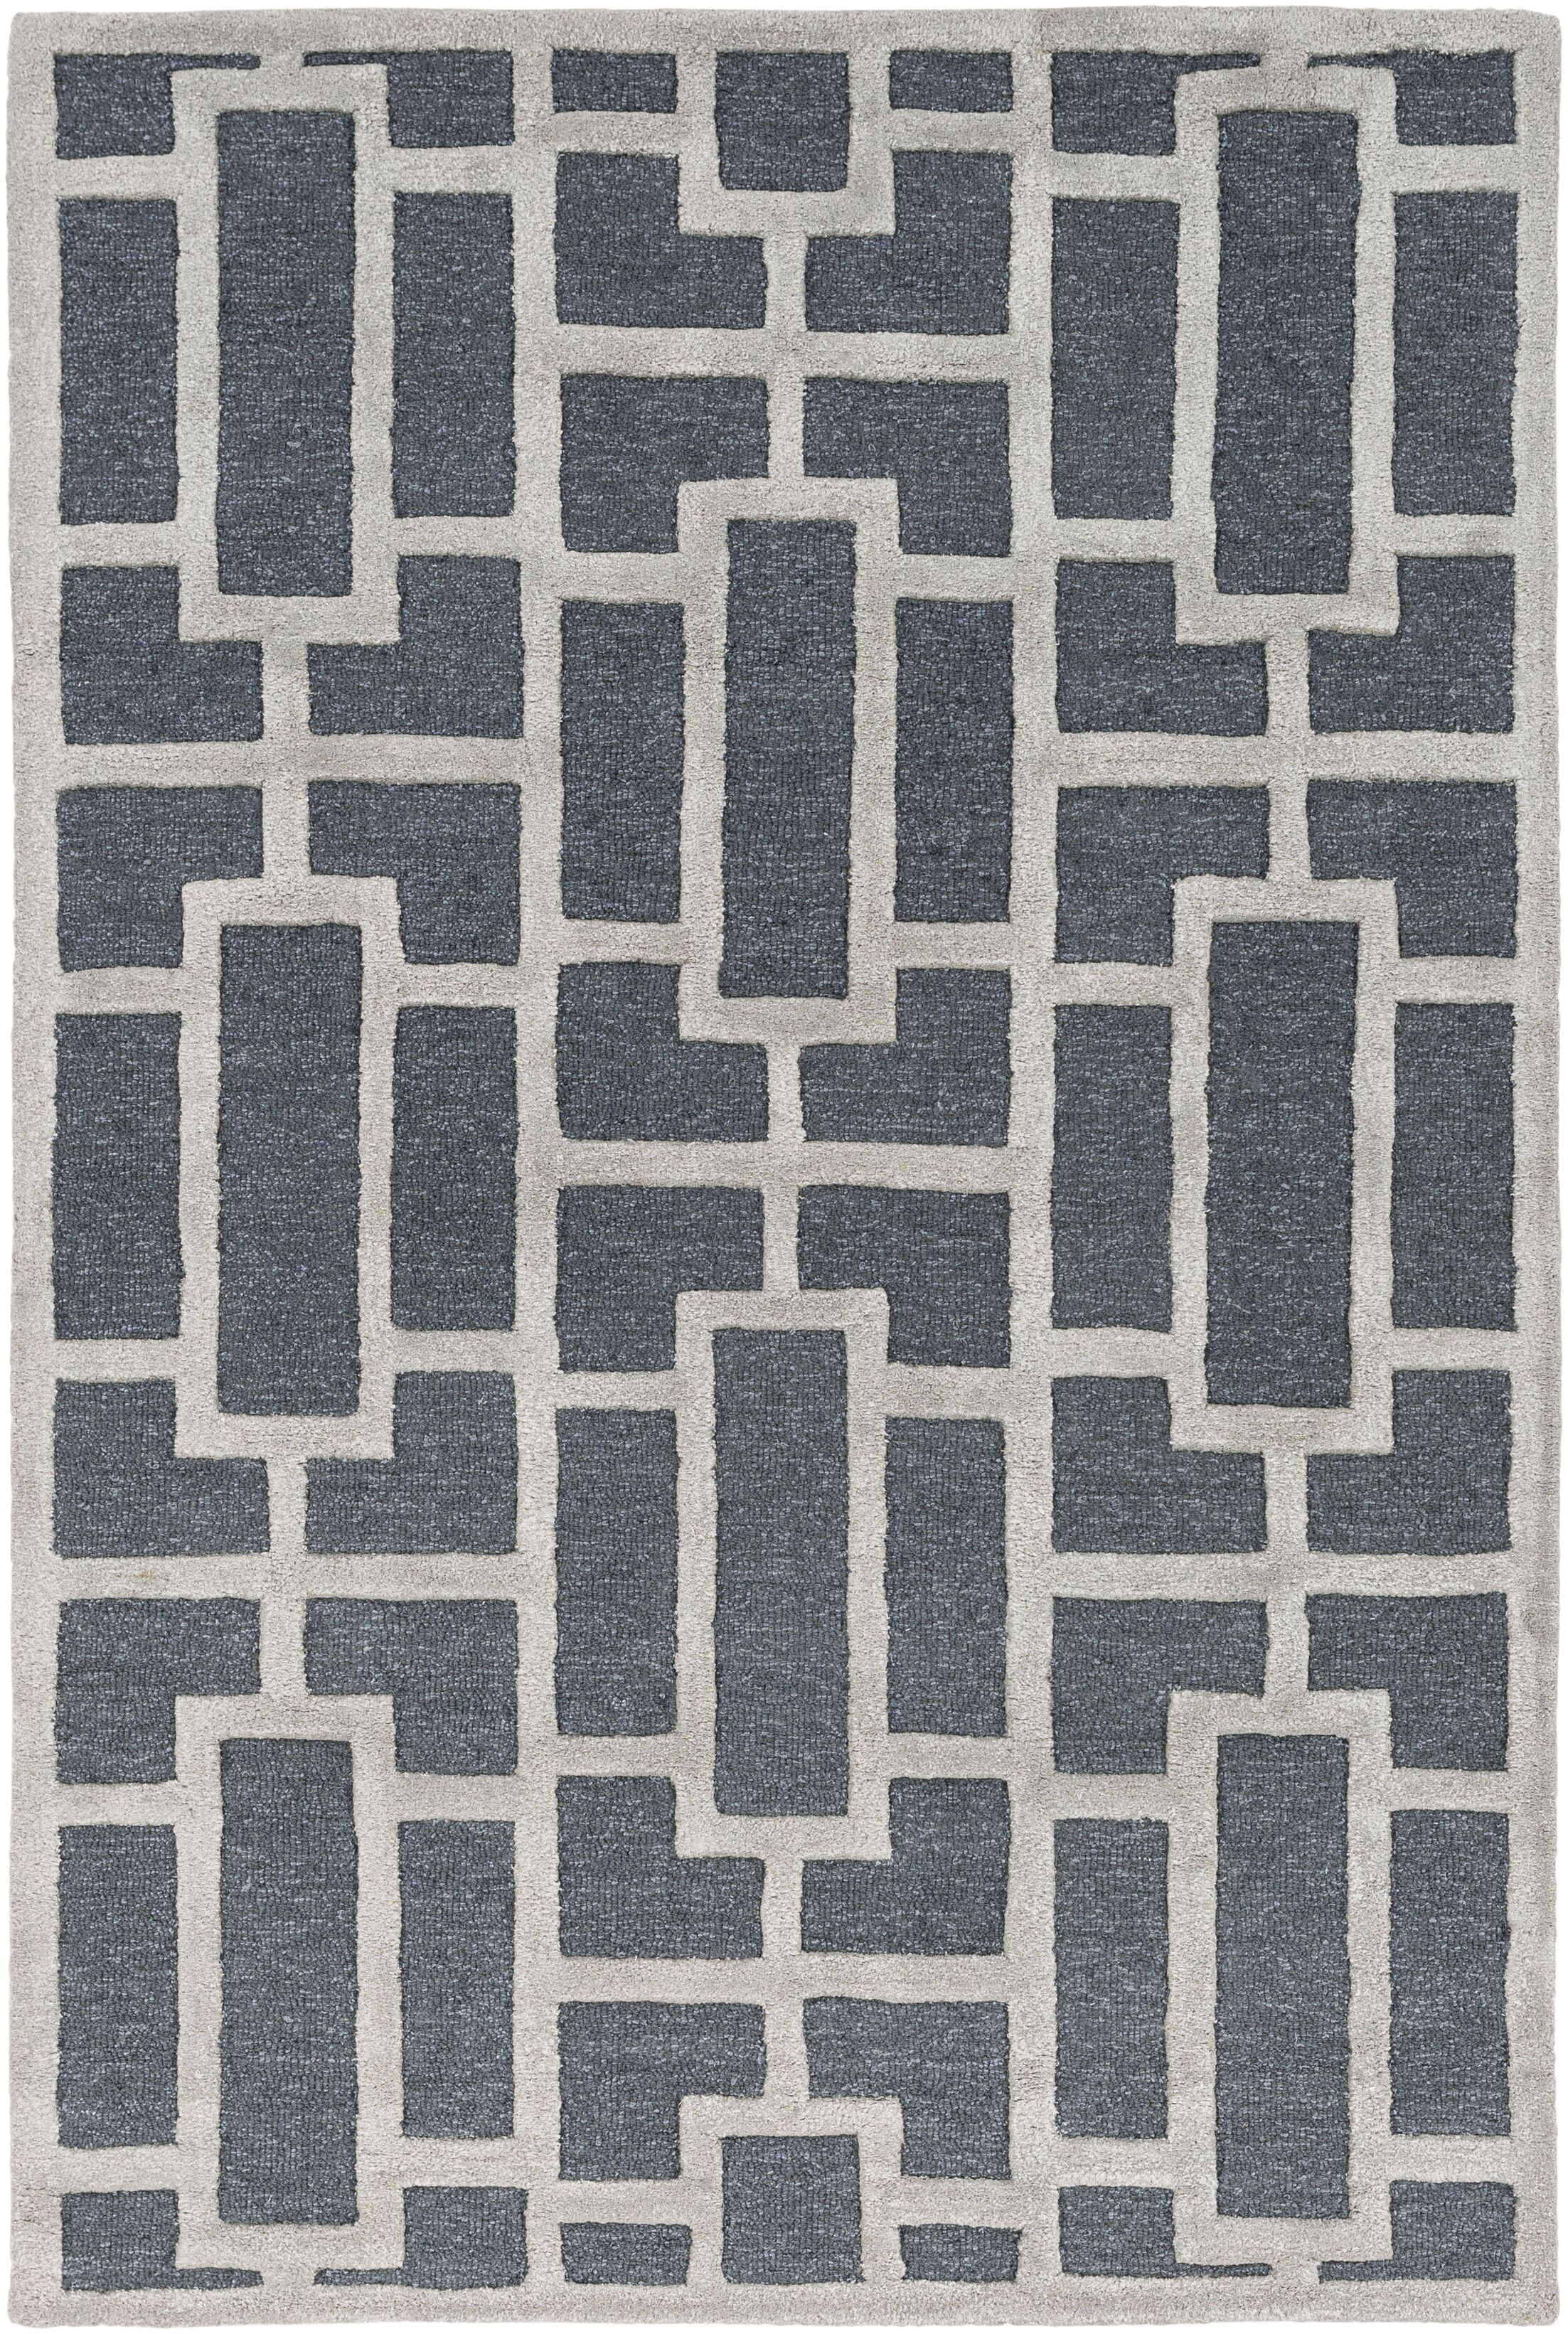 Perpetua Hand-Tufted Navy Area Rug Rug Size: Rectangle 4' x 6'